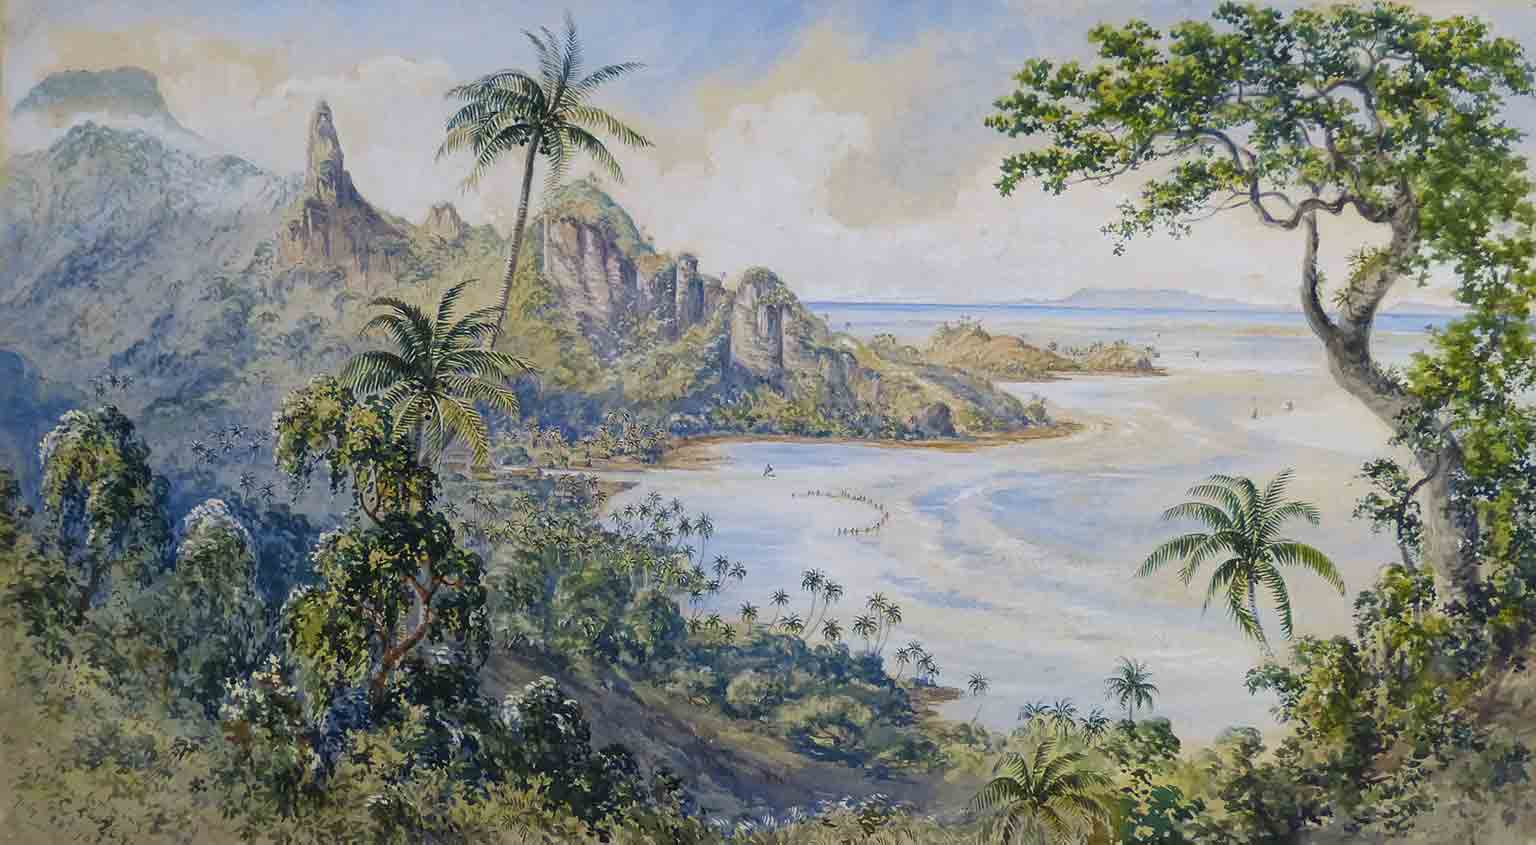 Fiji: Art and Life in the Pacific, Sainsbury Centre for Visual Arts, autumn 2016 - Constance Gordon Cumming, View Of Tokou, Ovalau, 1870s. Courtesy MAA, Cambridge